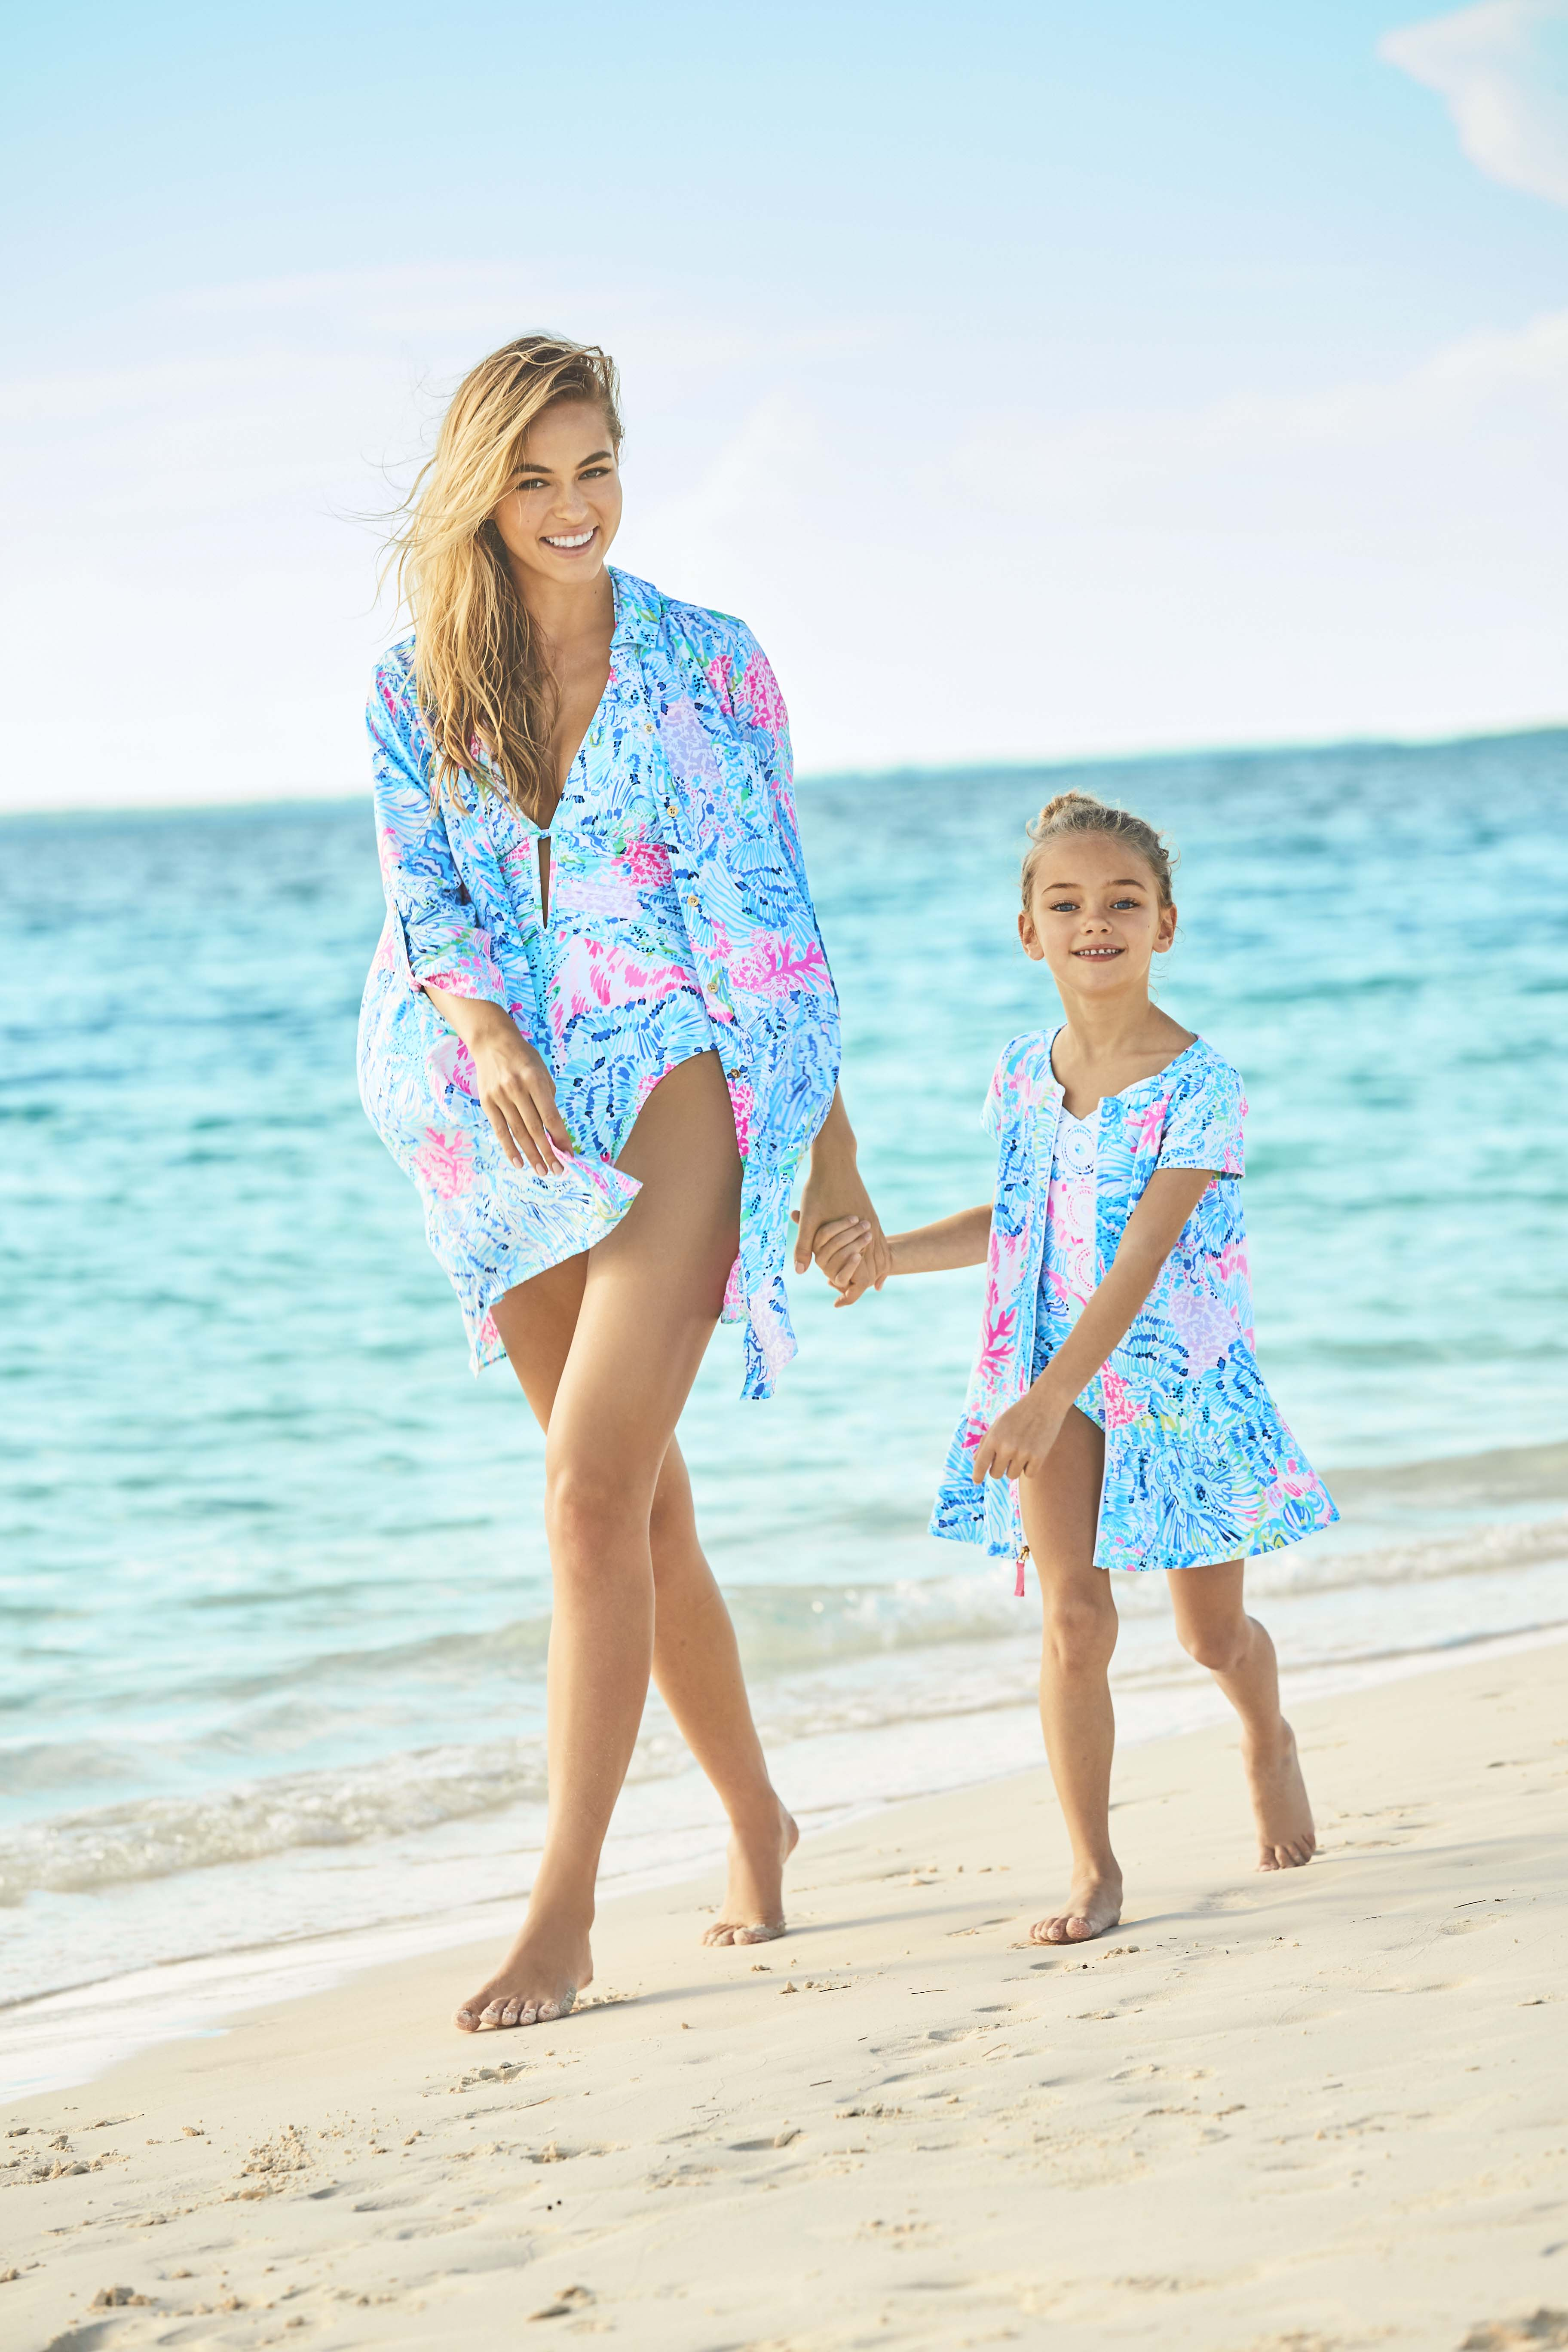 Lilly Pulitzer And Brightline Team Up For A Mother's Day Adventure